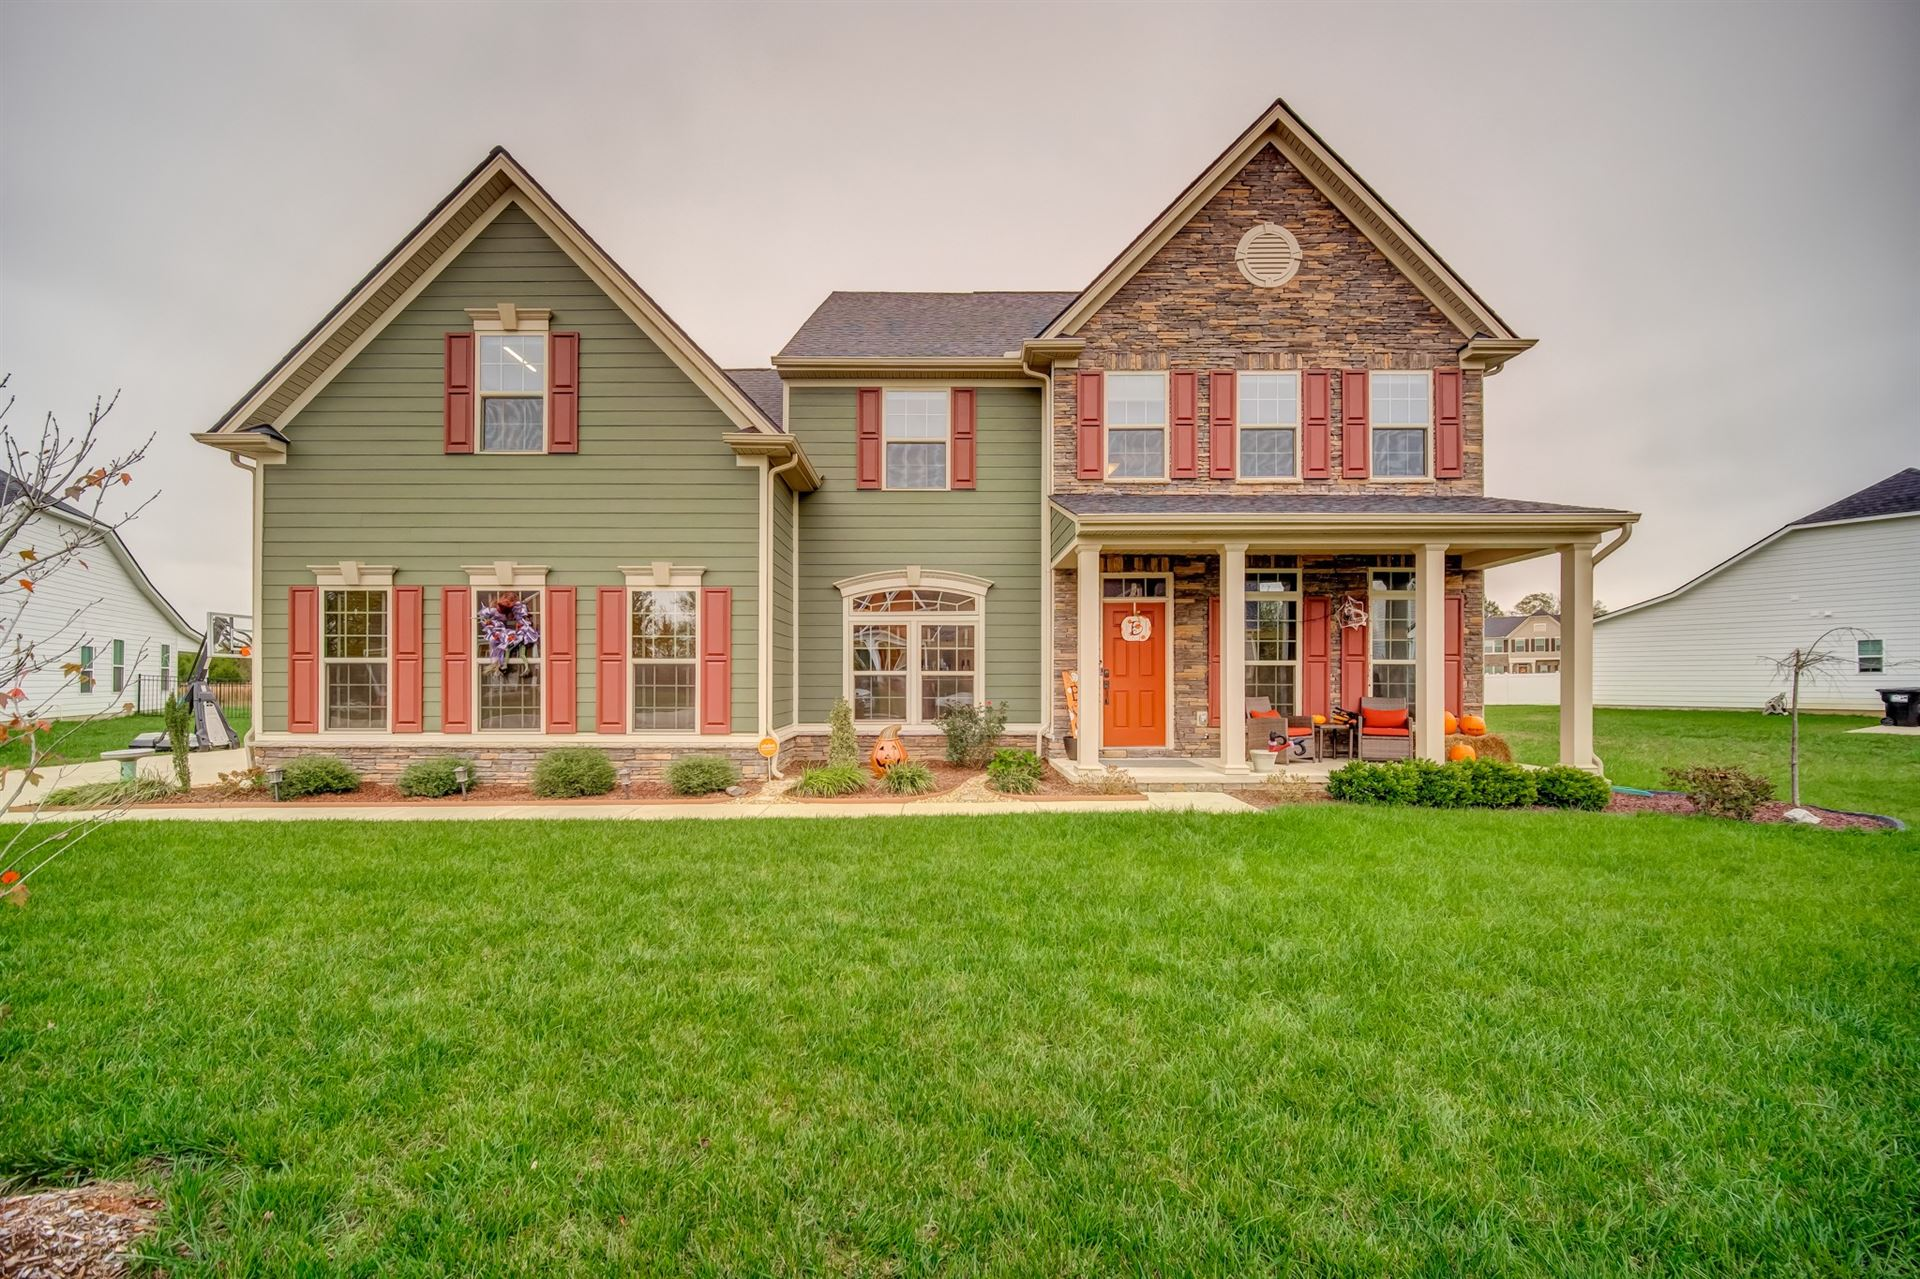 2615 Pepper Branch Dr, Murfreesboro, TN 37128 - MLS#: 2200641